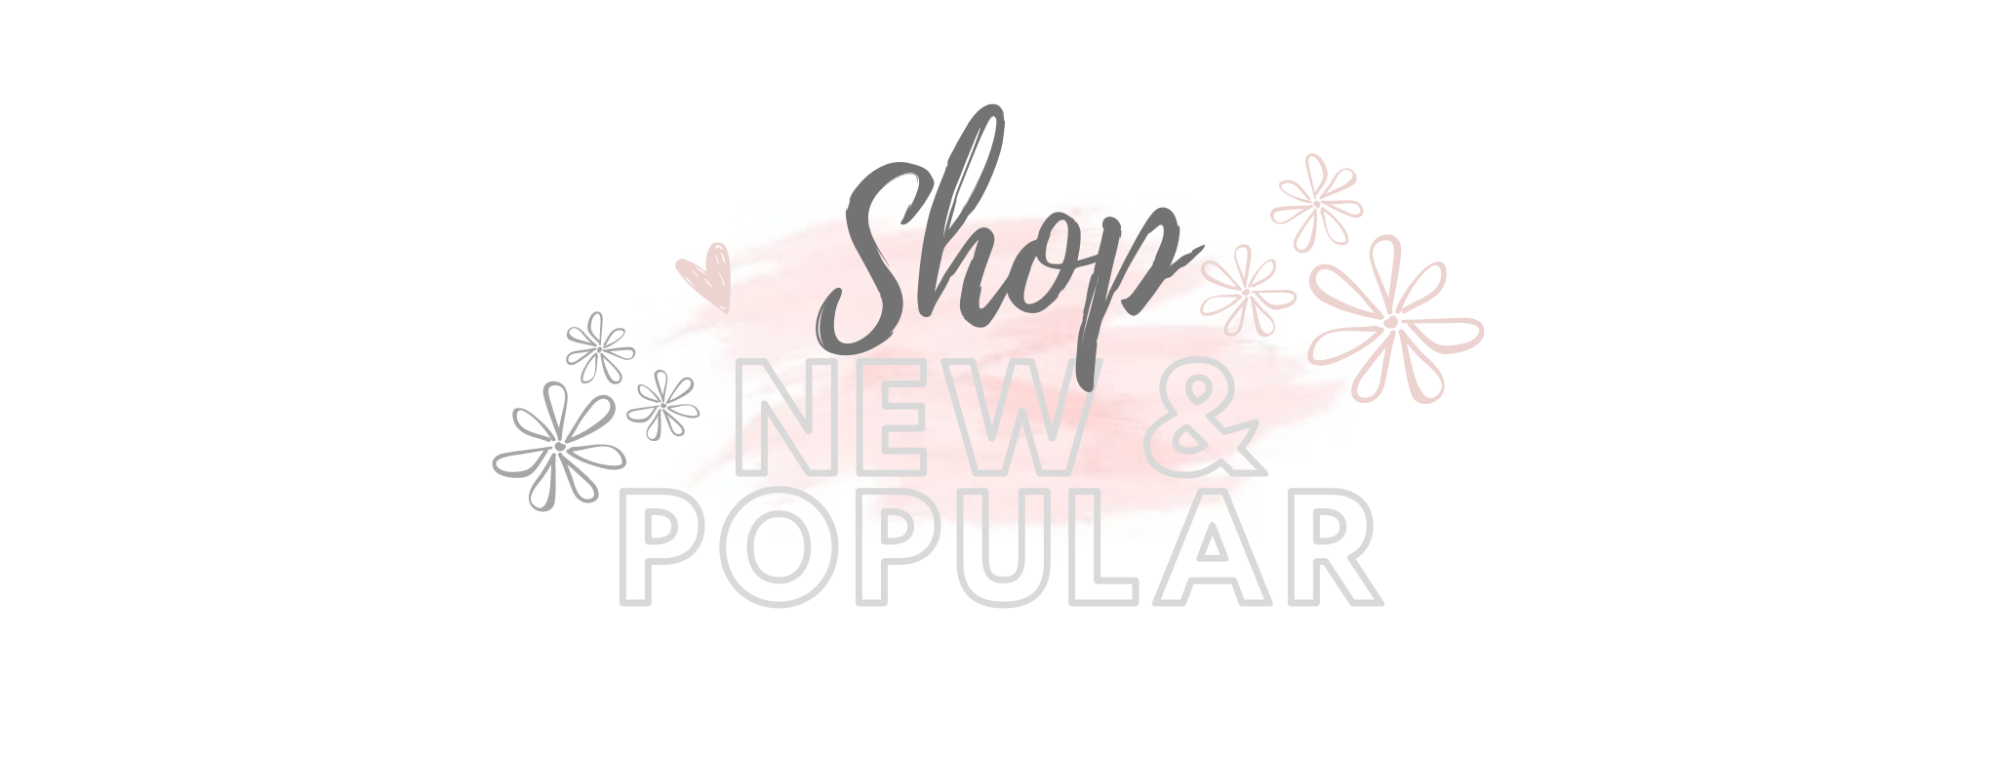 Shop new and popular